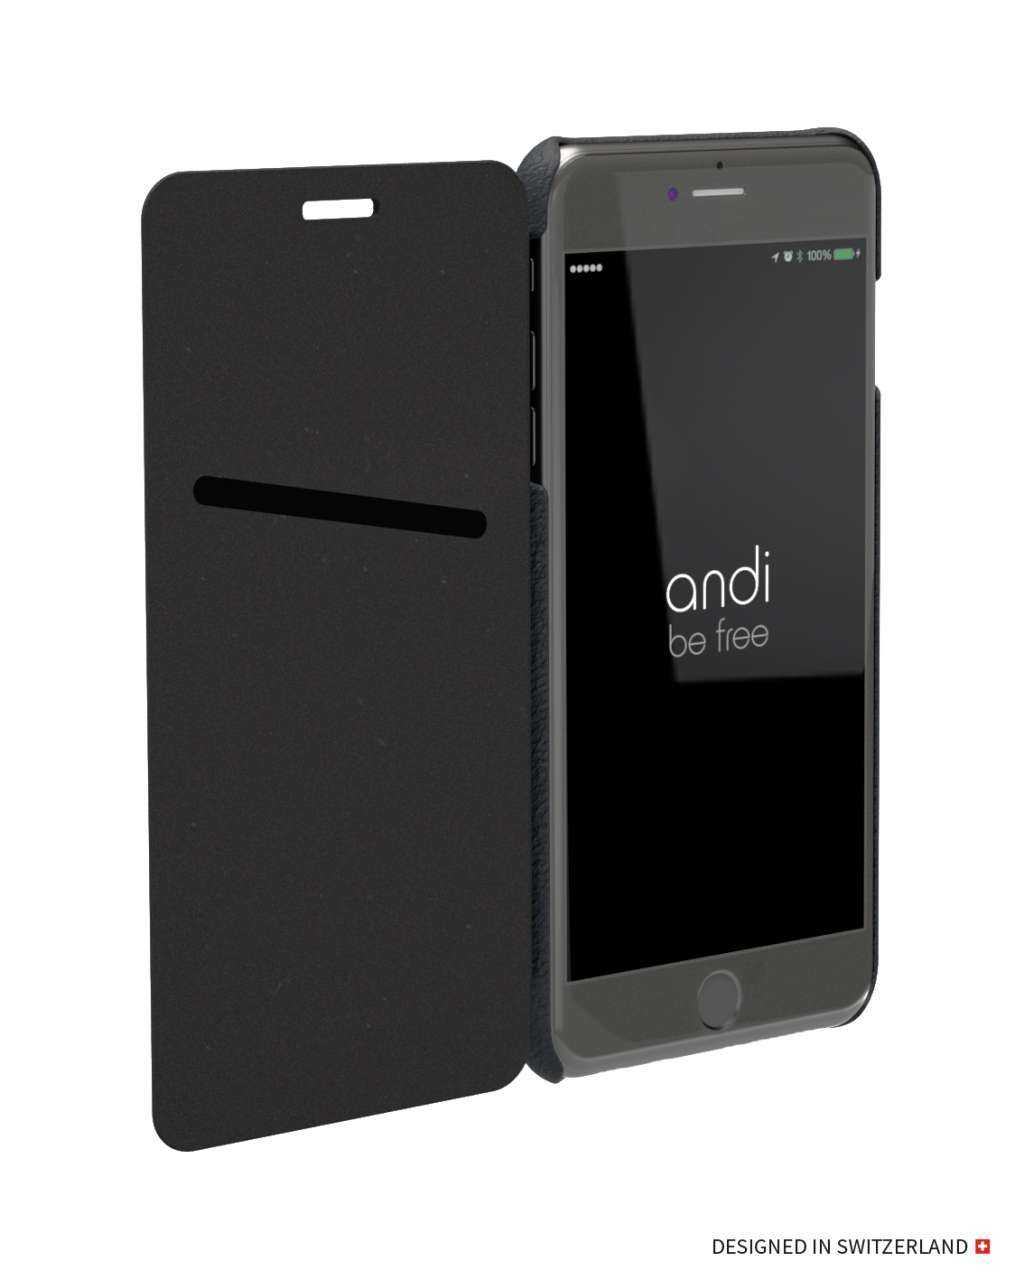 Image of andi be free Apple iPhone 8 Hülle - Wireless Charging Leder Book Case - schwarz